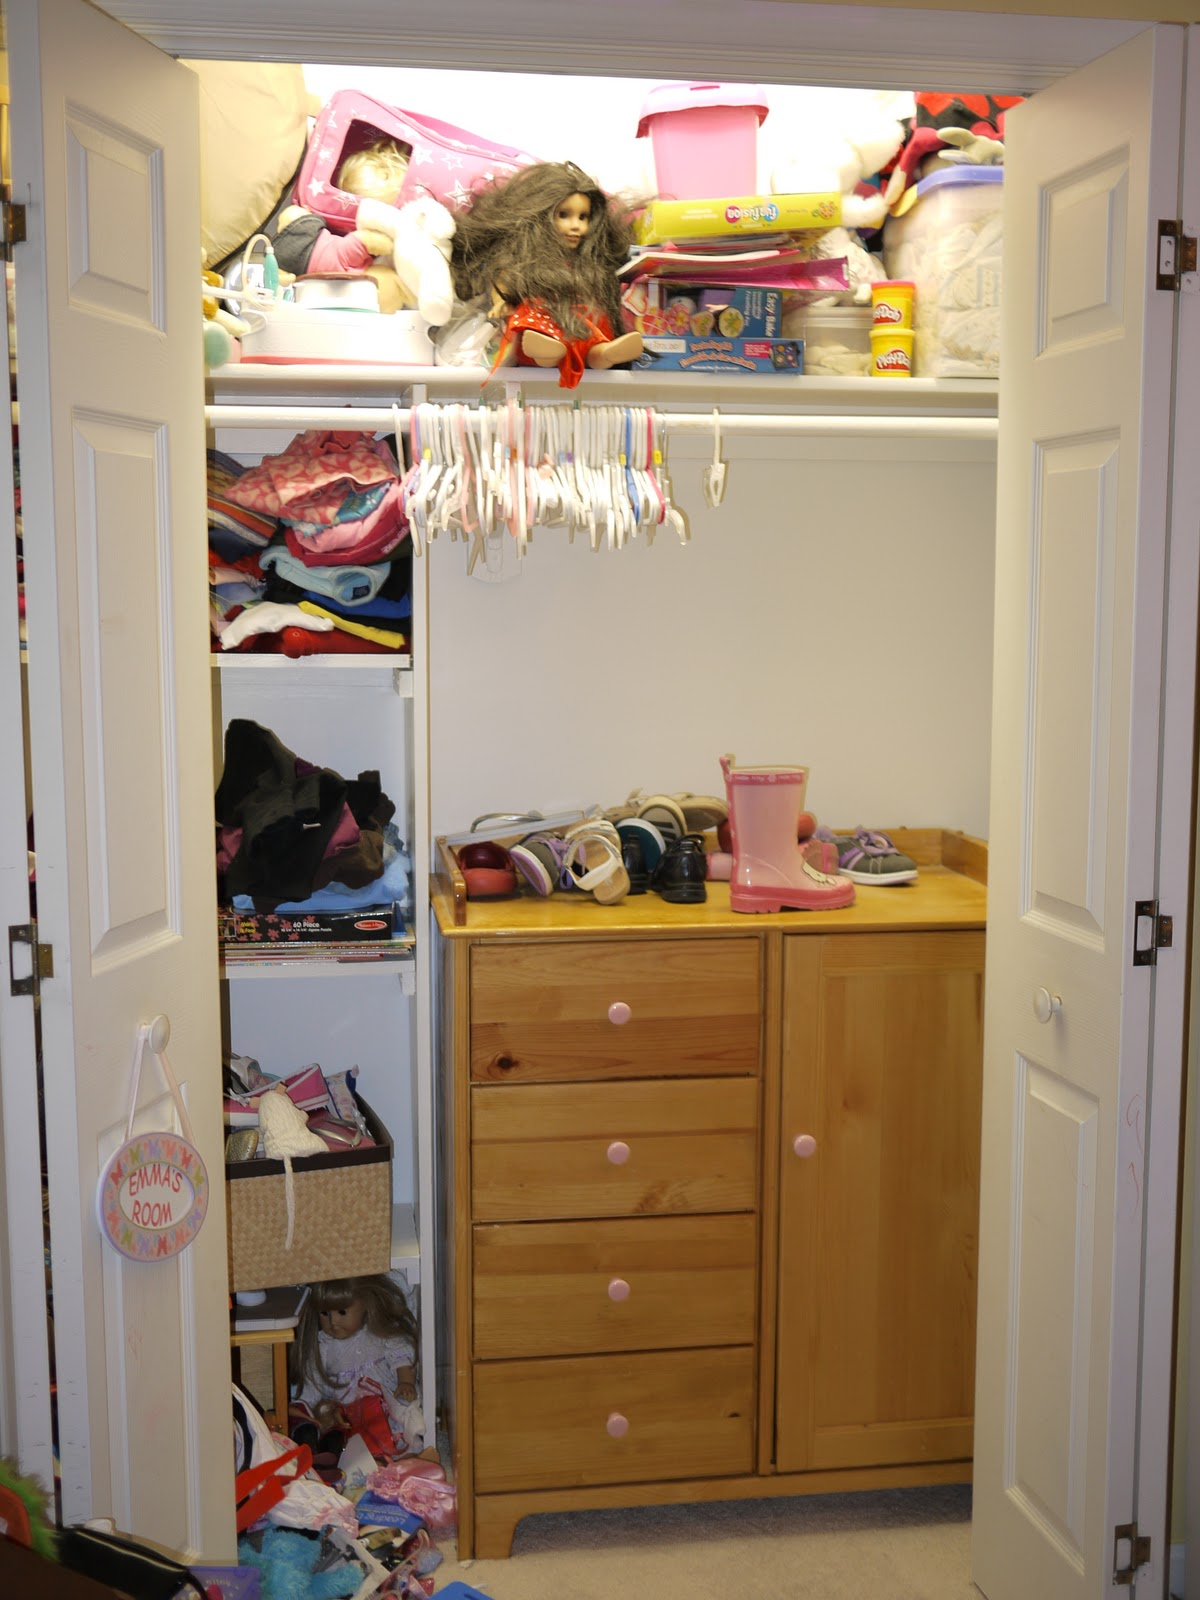 Wonderful I Moved In Her Dresser/ Changing Table From When She Was A Baby. It